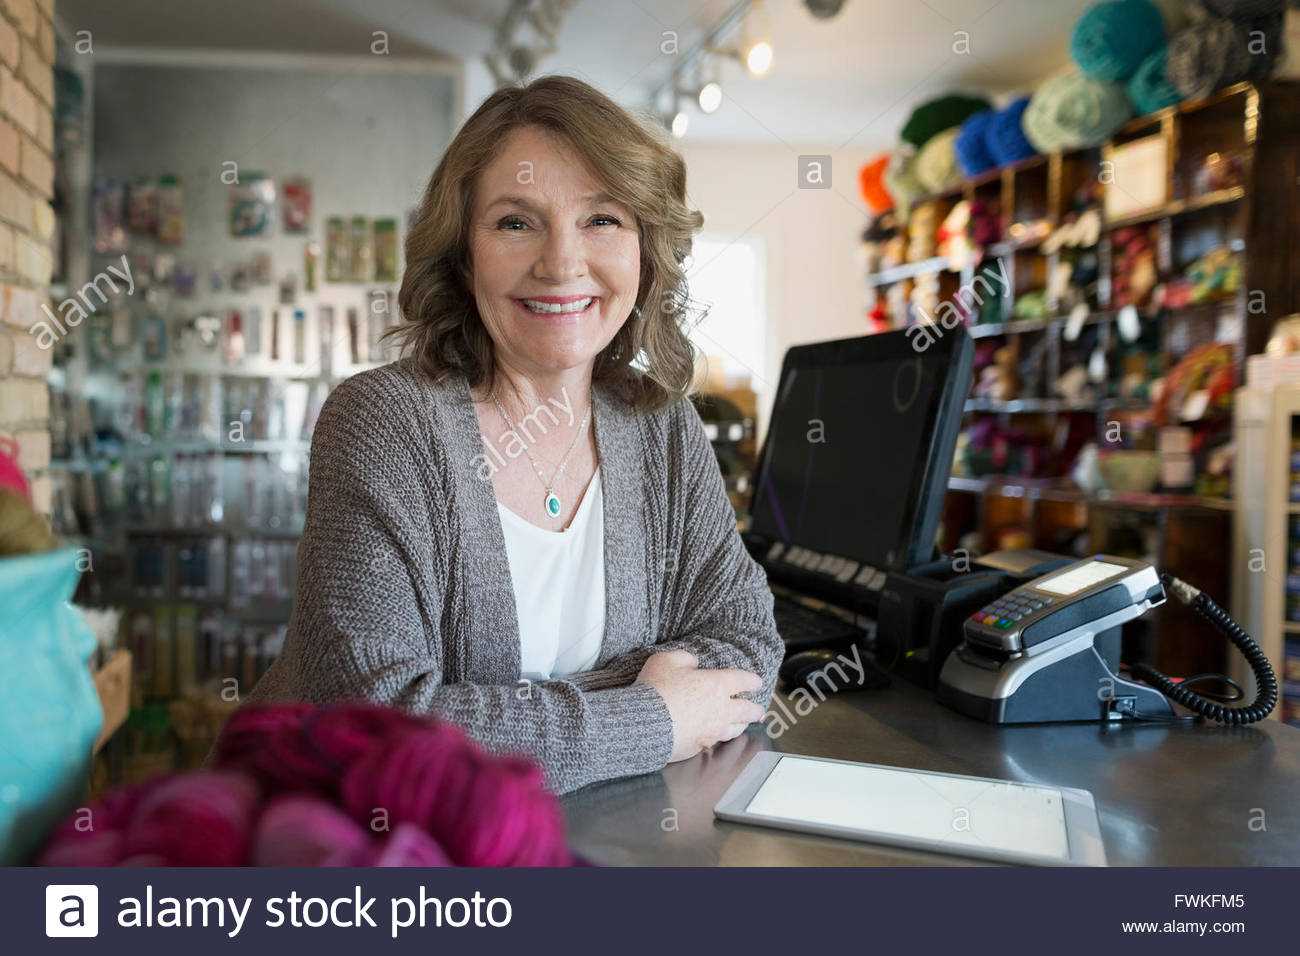 Portrait smiling yarn store owner with digital tablet - Stock Image